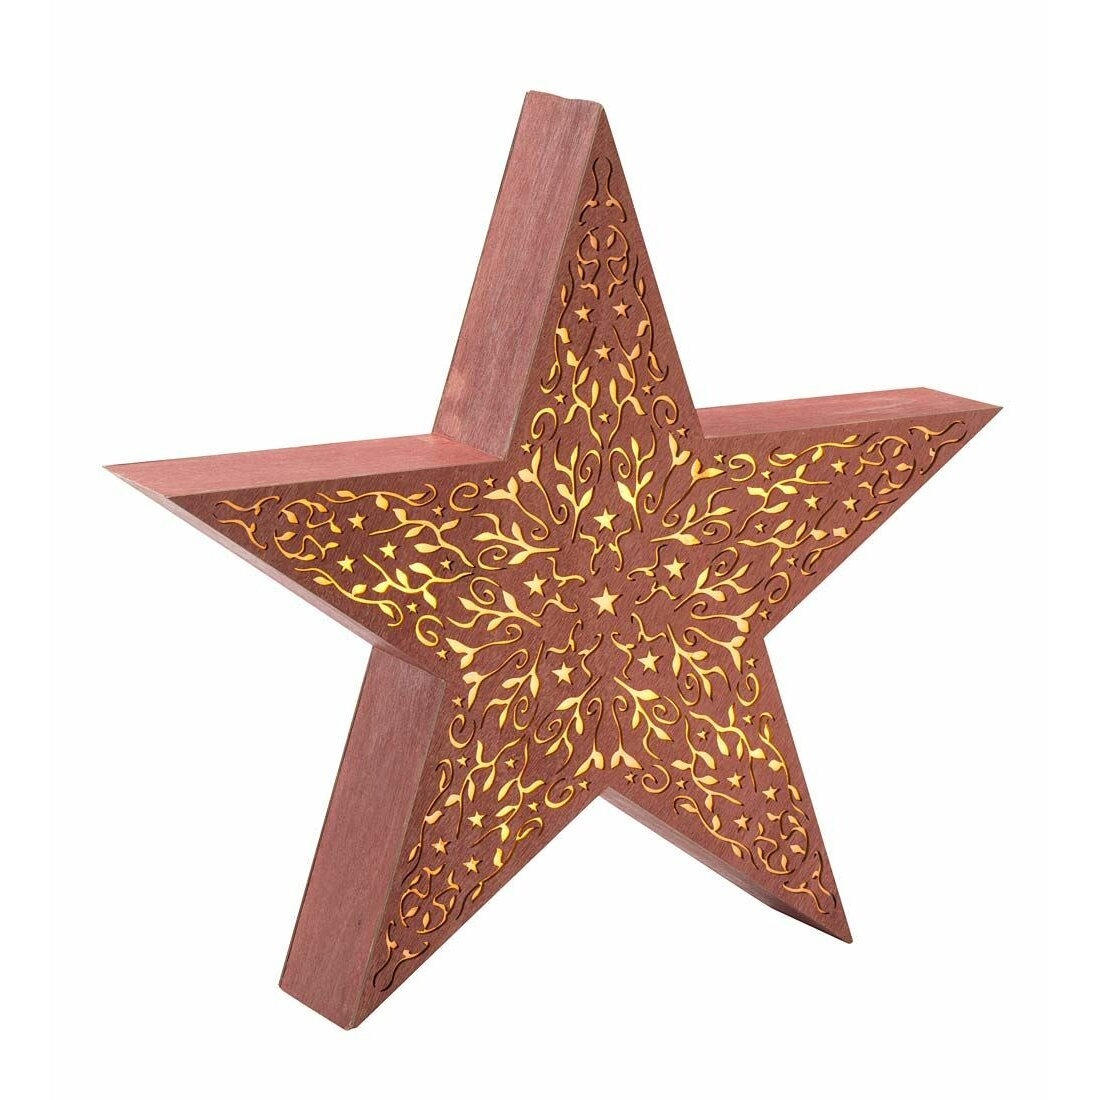 Plow Hearth Decorative Large Rustic Wood Star Light